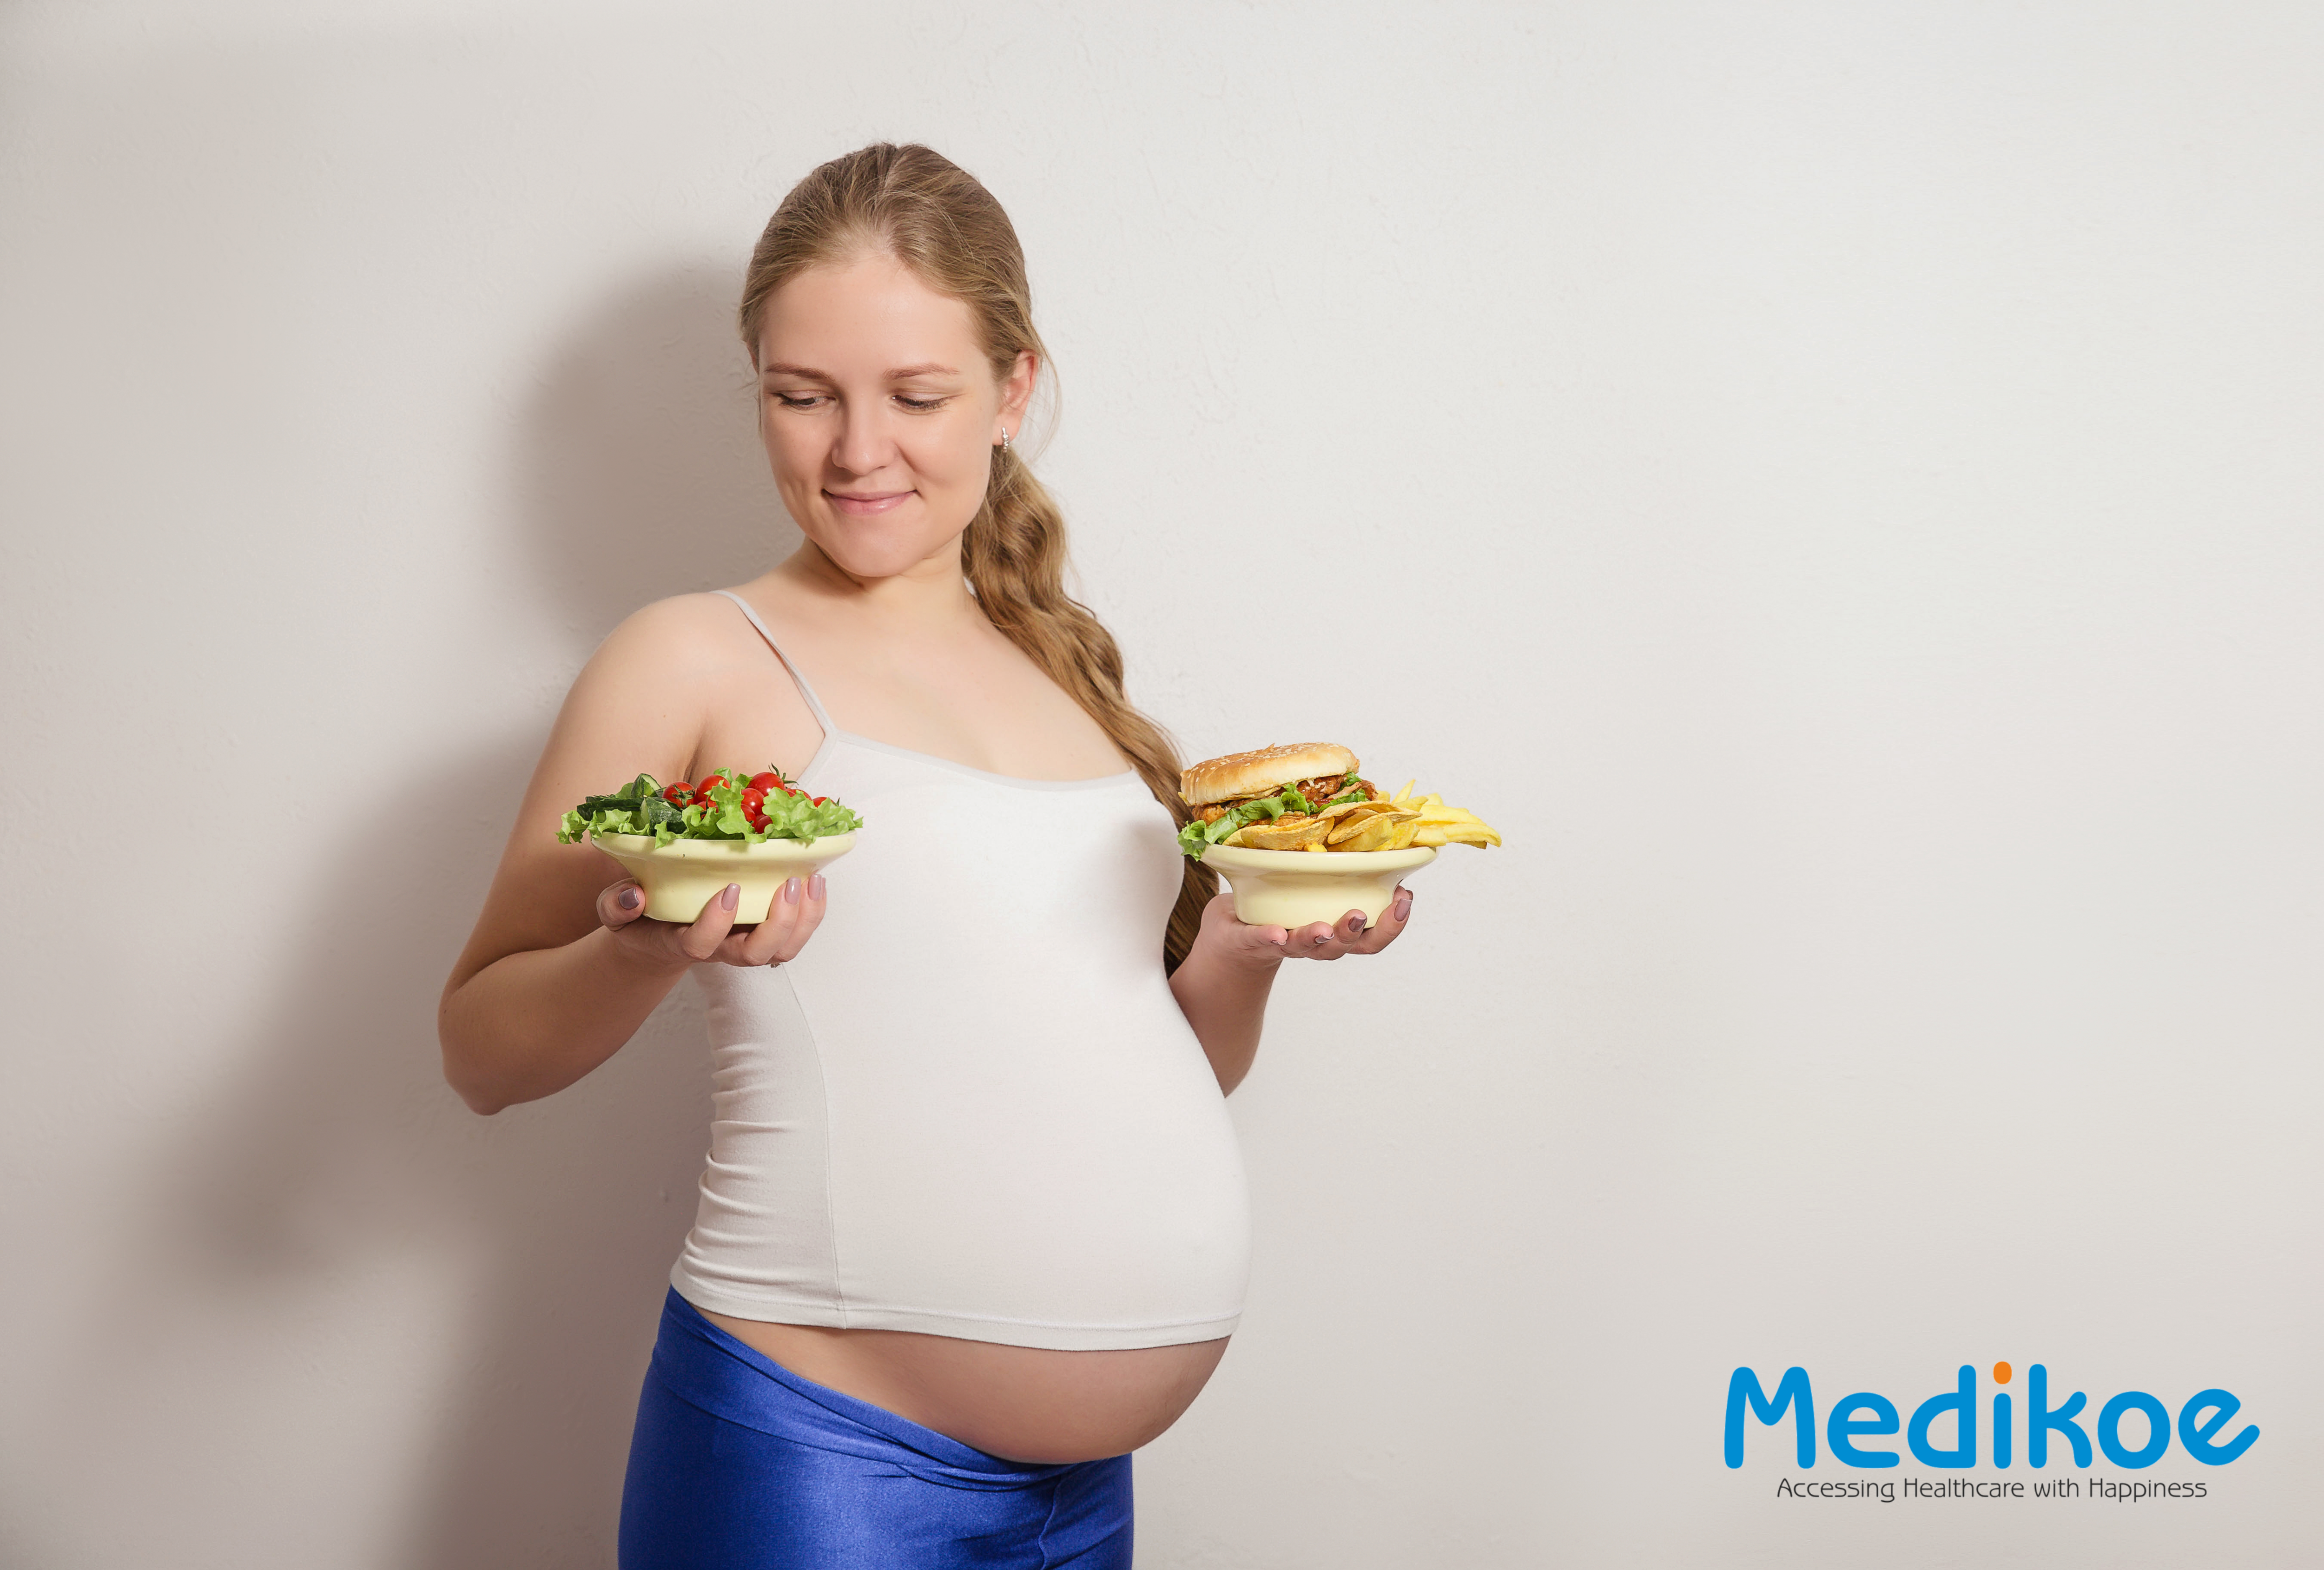 Diet During Pregnancy: What to Eat, What Not to Eat?